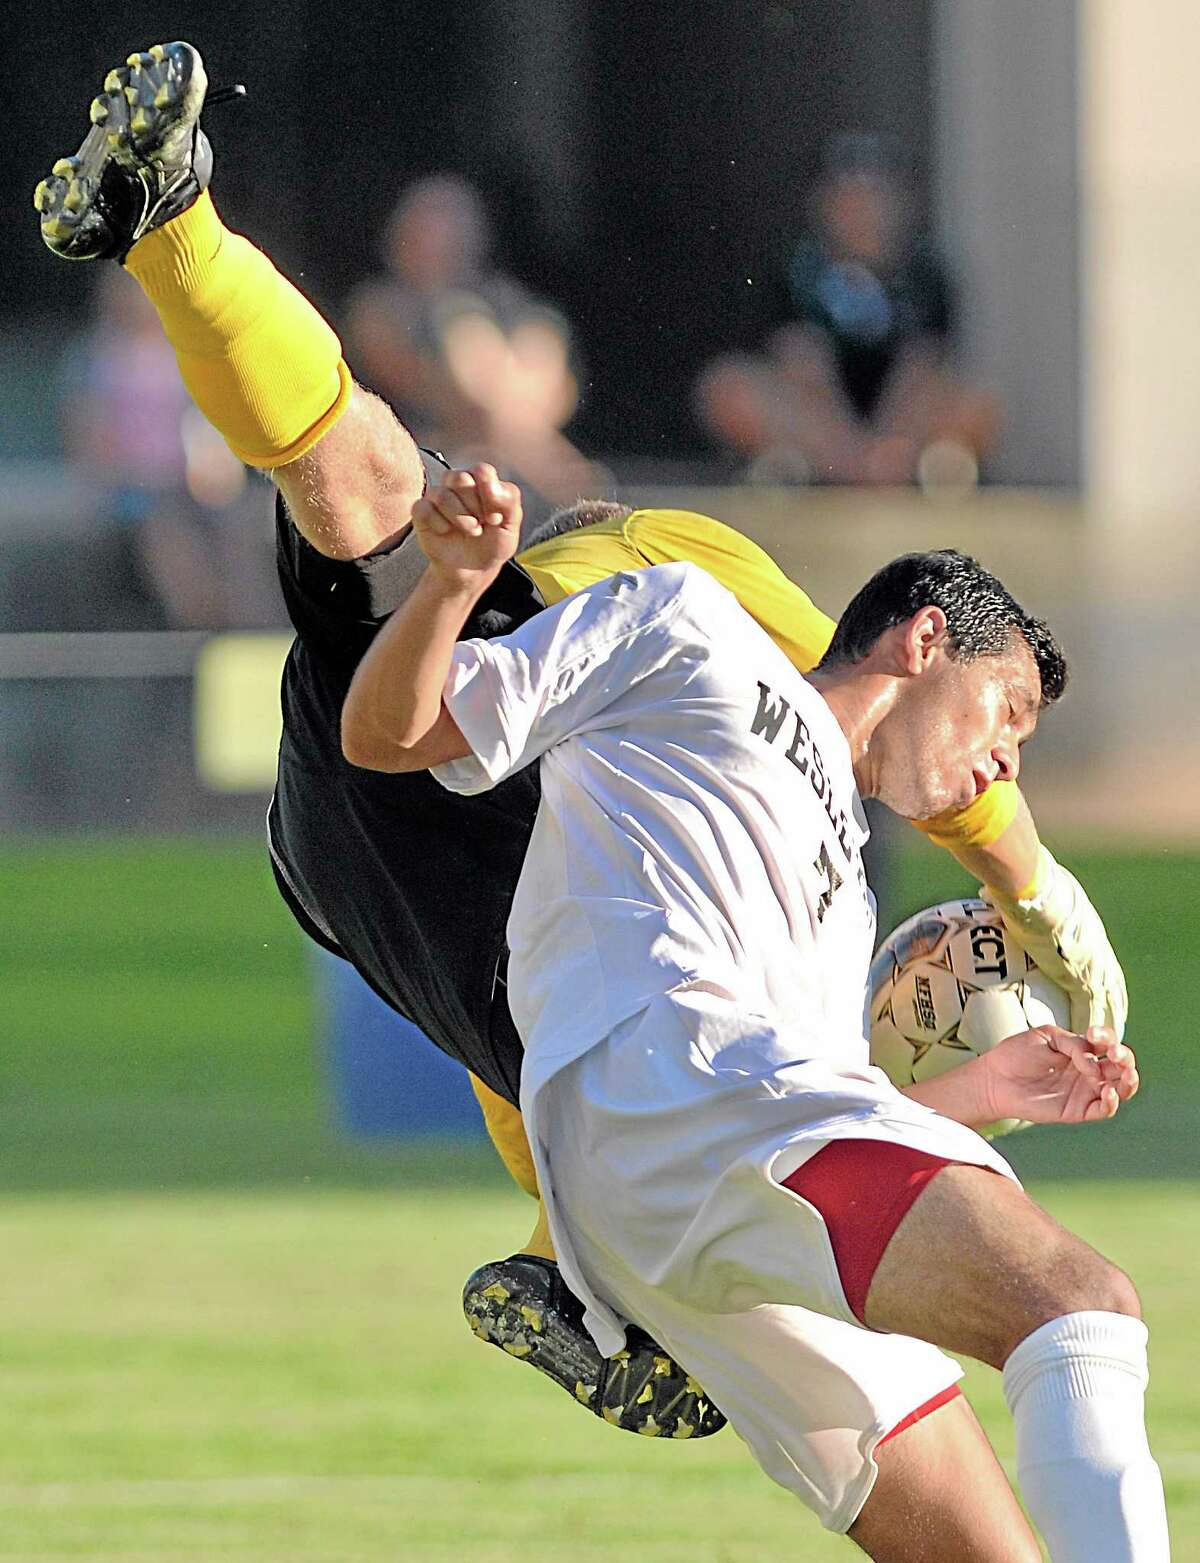 Wesleyan junior Omar Bravo collides with Framingham State University junior goalie William Levitsky battling for possession in the second half of Wednesday's game at Jackson Field. The Cardinals defeated the Rams 3-0.